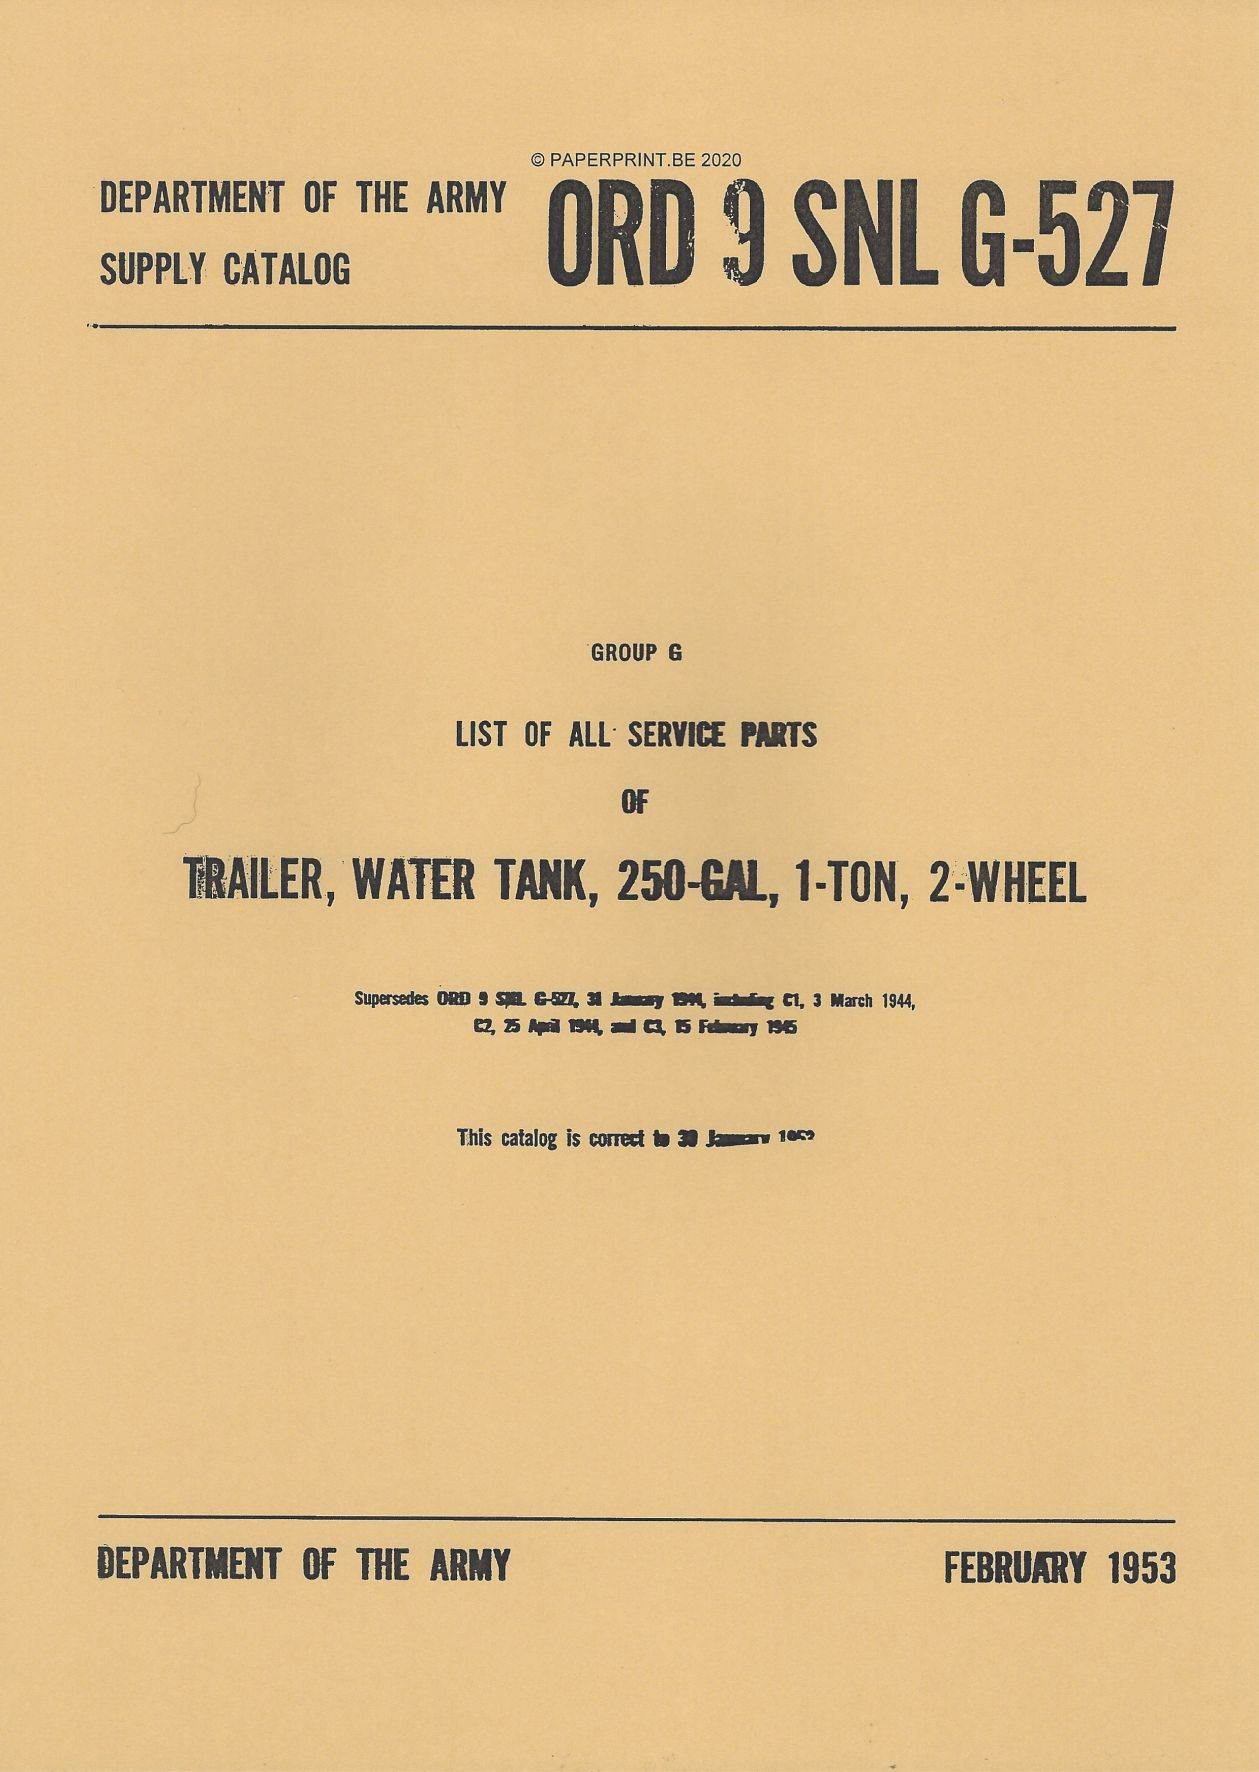 SNL G-527 US LIST OF ALL SERVICE PARTS OF TRAILER, WATER TANK, 250-GAL, 1-TON,2-WHEEM